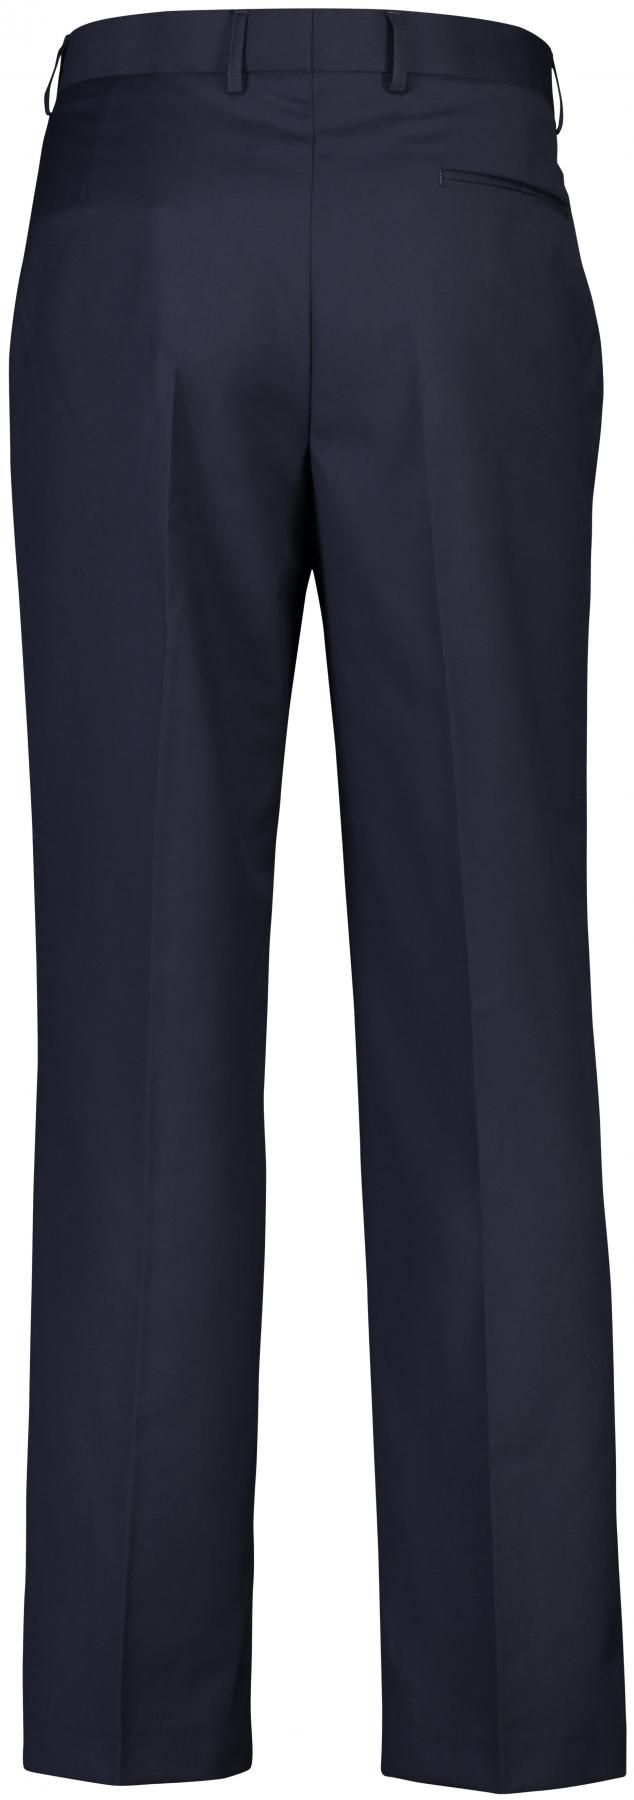 Mens Colorado Pleat Front Trouser